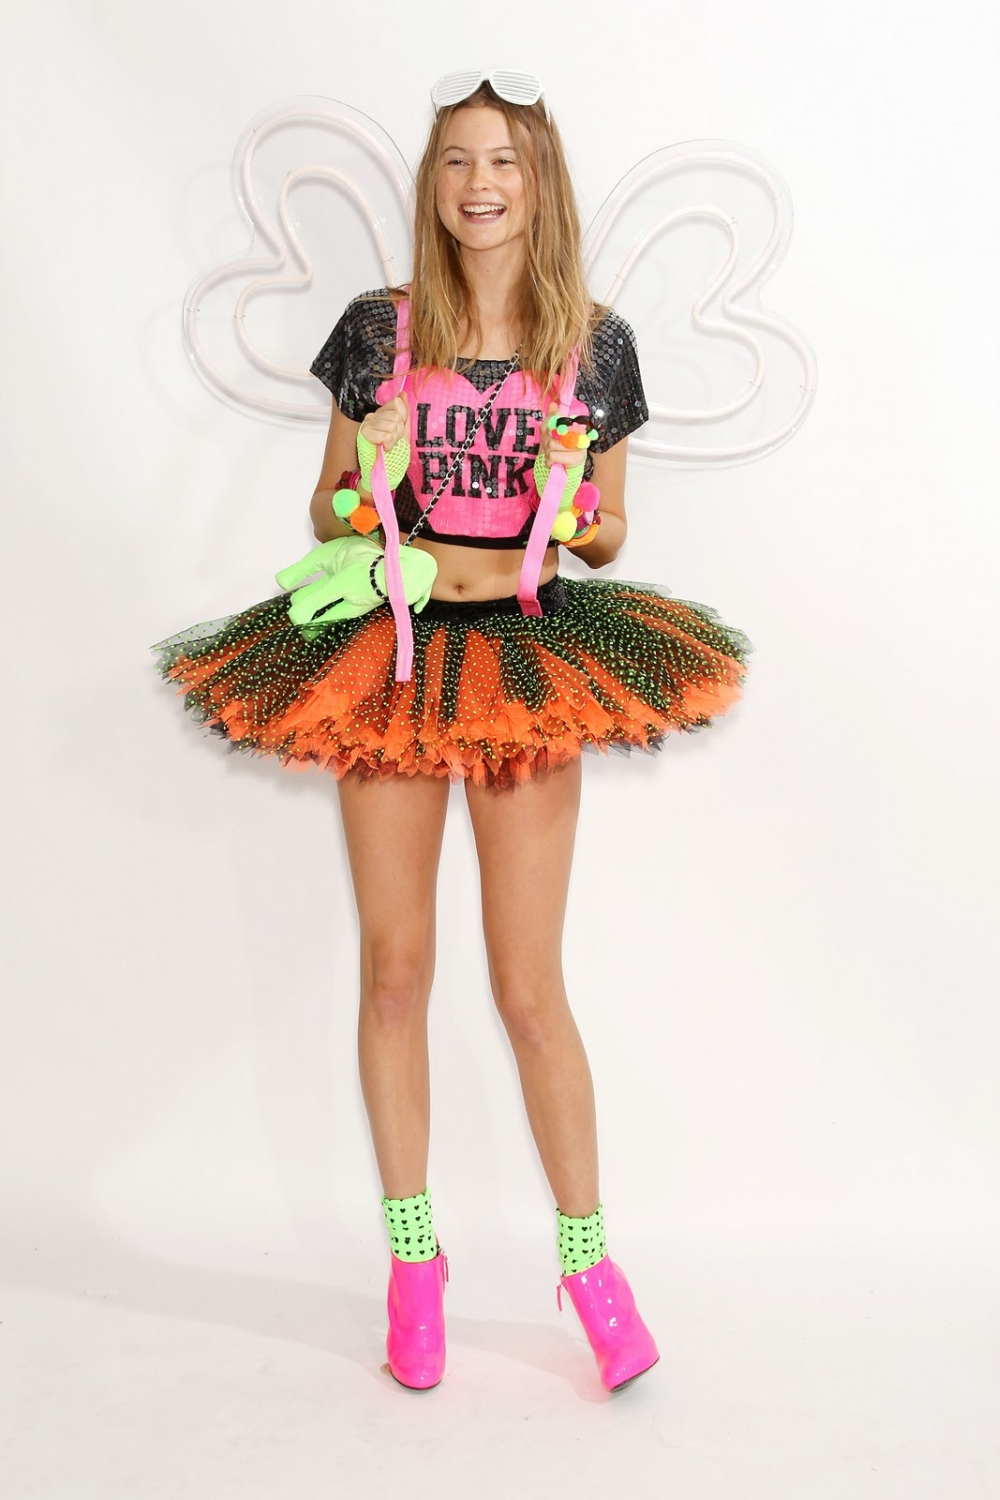 VS Lingerie Models Blog ♥: VSFS 2011: Behati Prinsloo ...